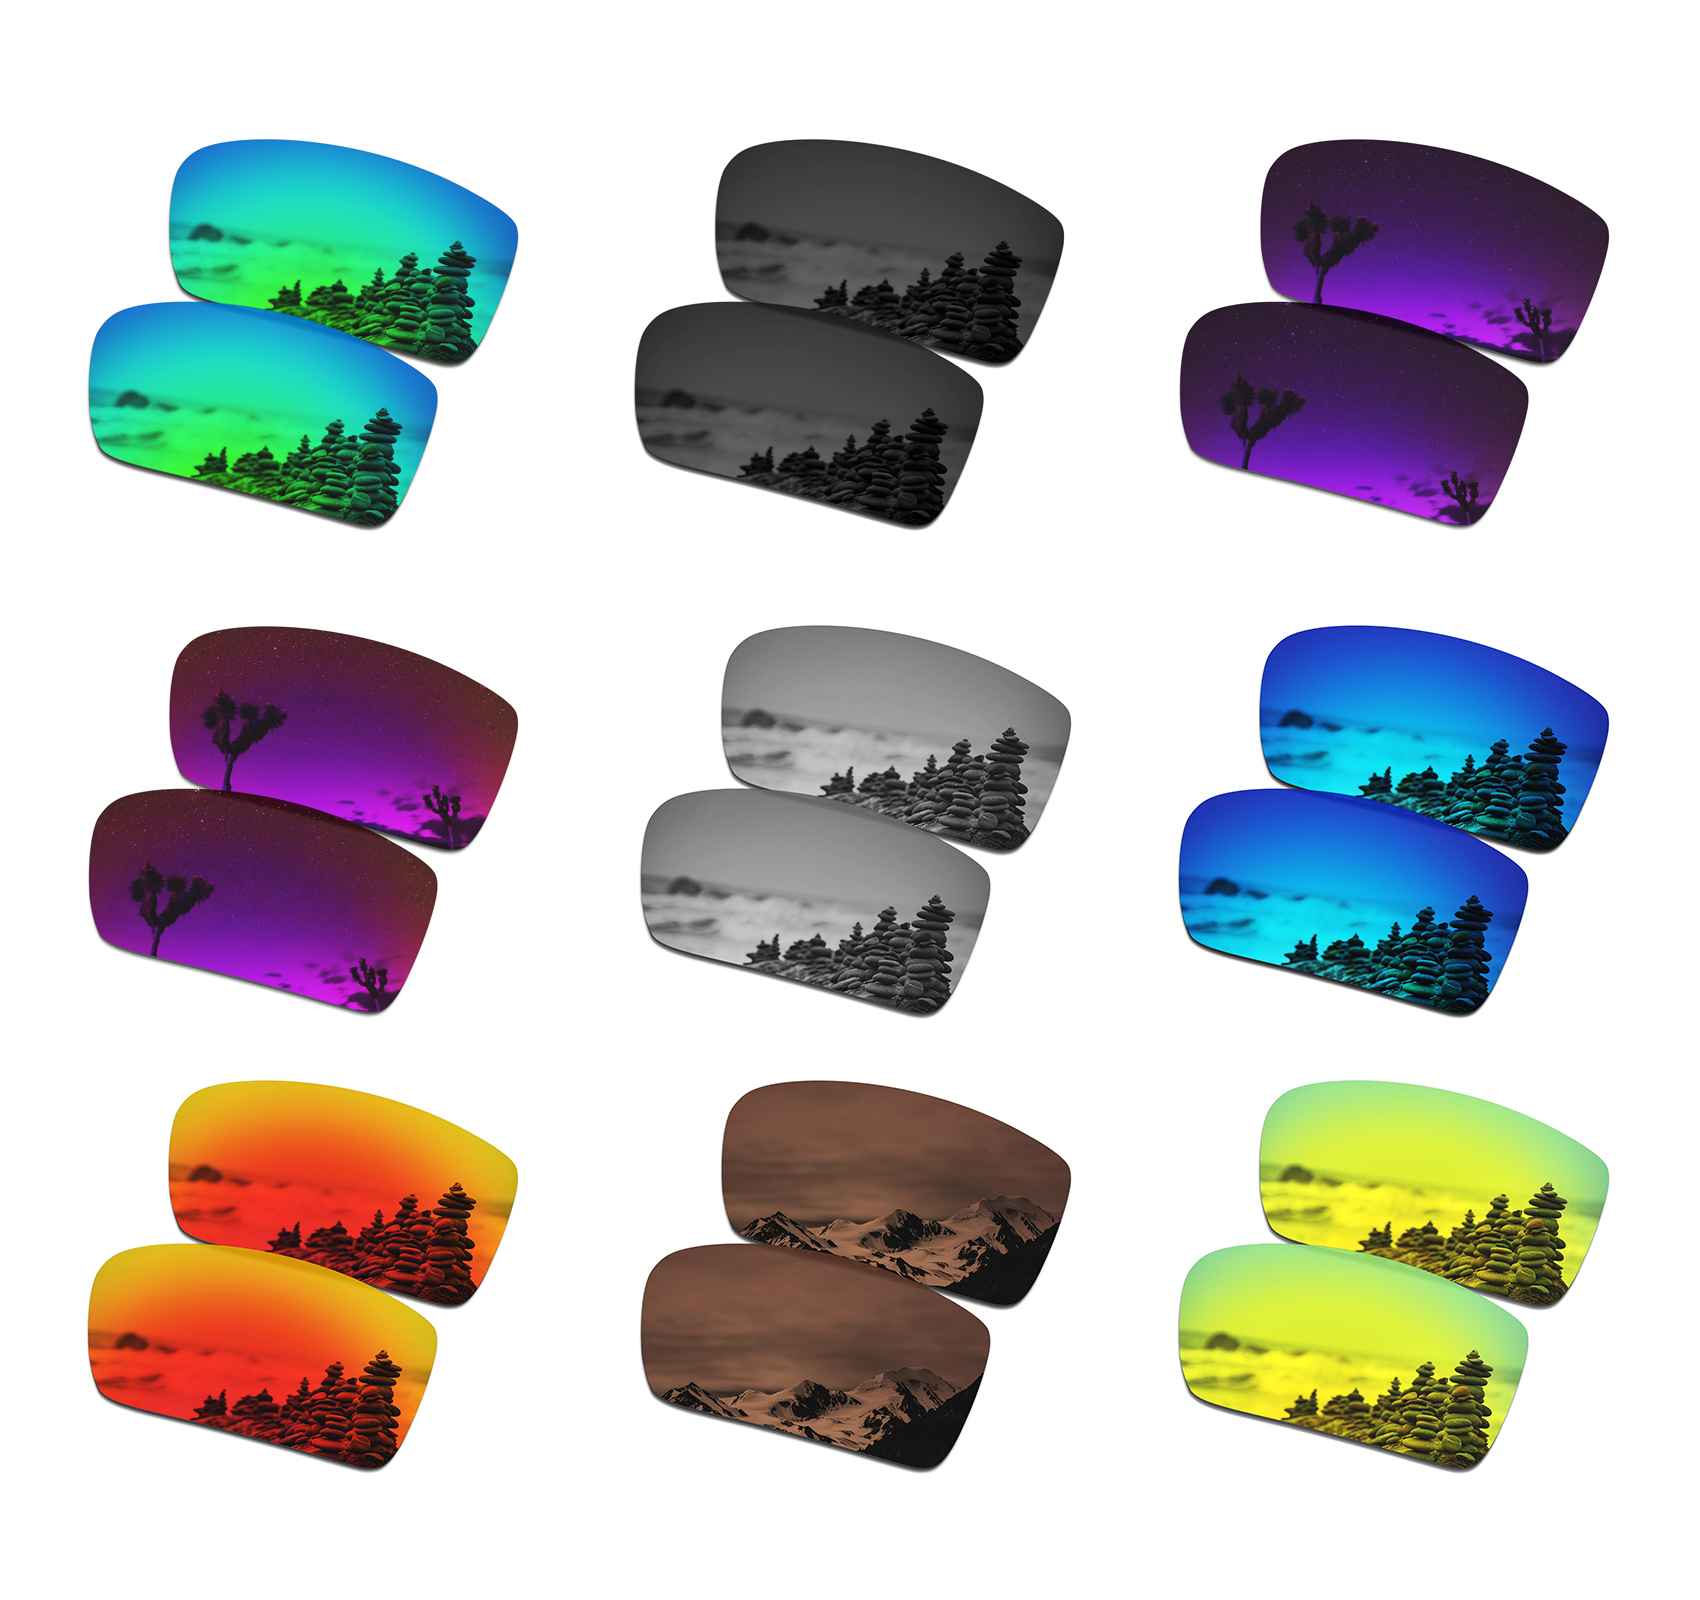 SmartVLT Polarized Replacement Lenses For Oakley Crankshaft Sunglasses - Multiple Options